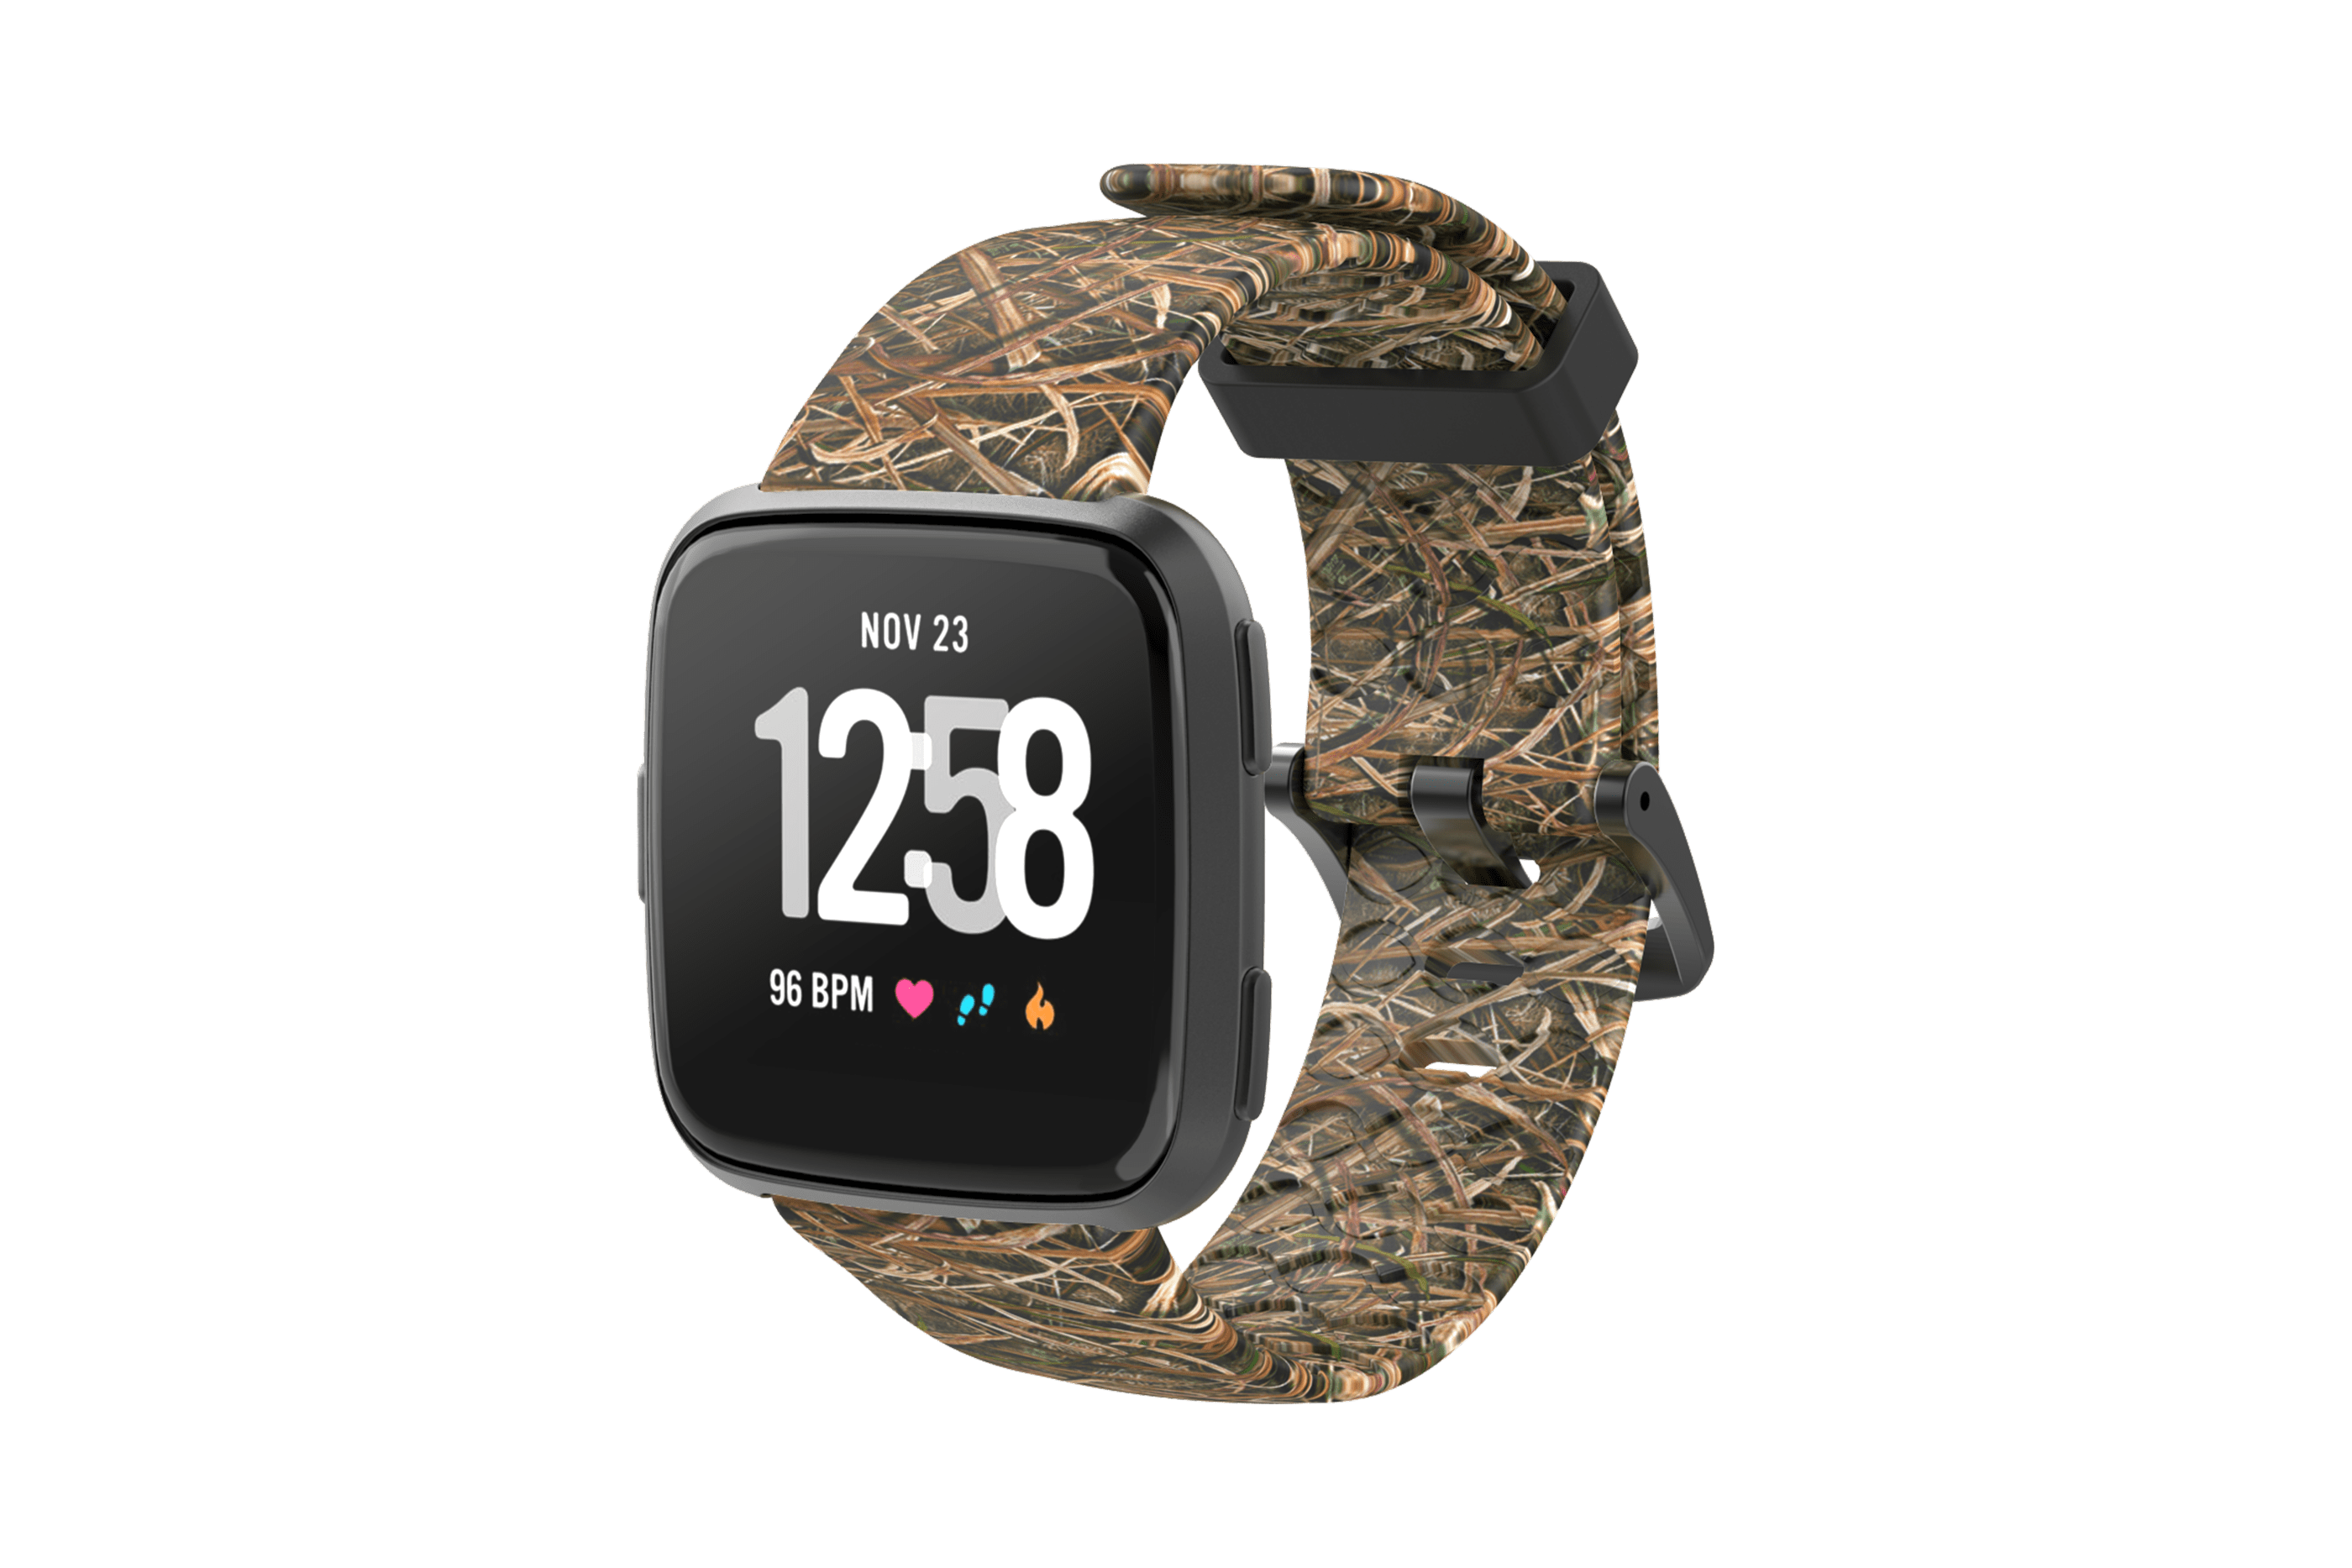 Mossy Oak Blades Fitbit Versa Watch Band vwith gray hardware iewed front on